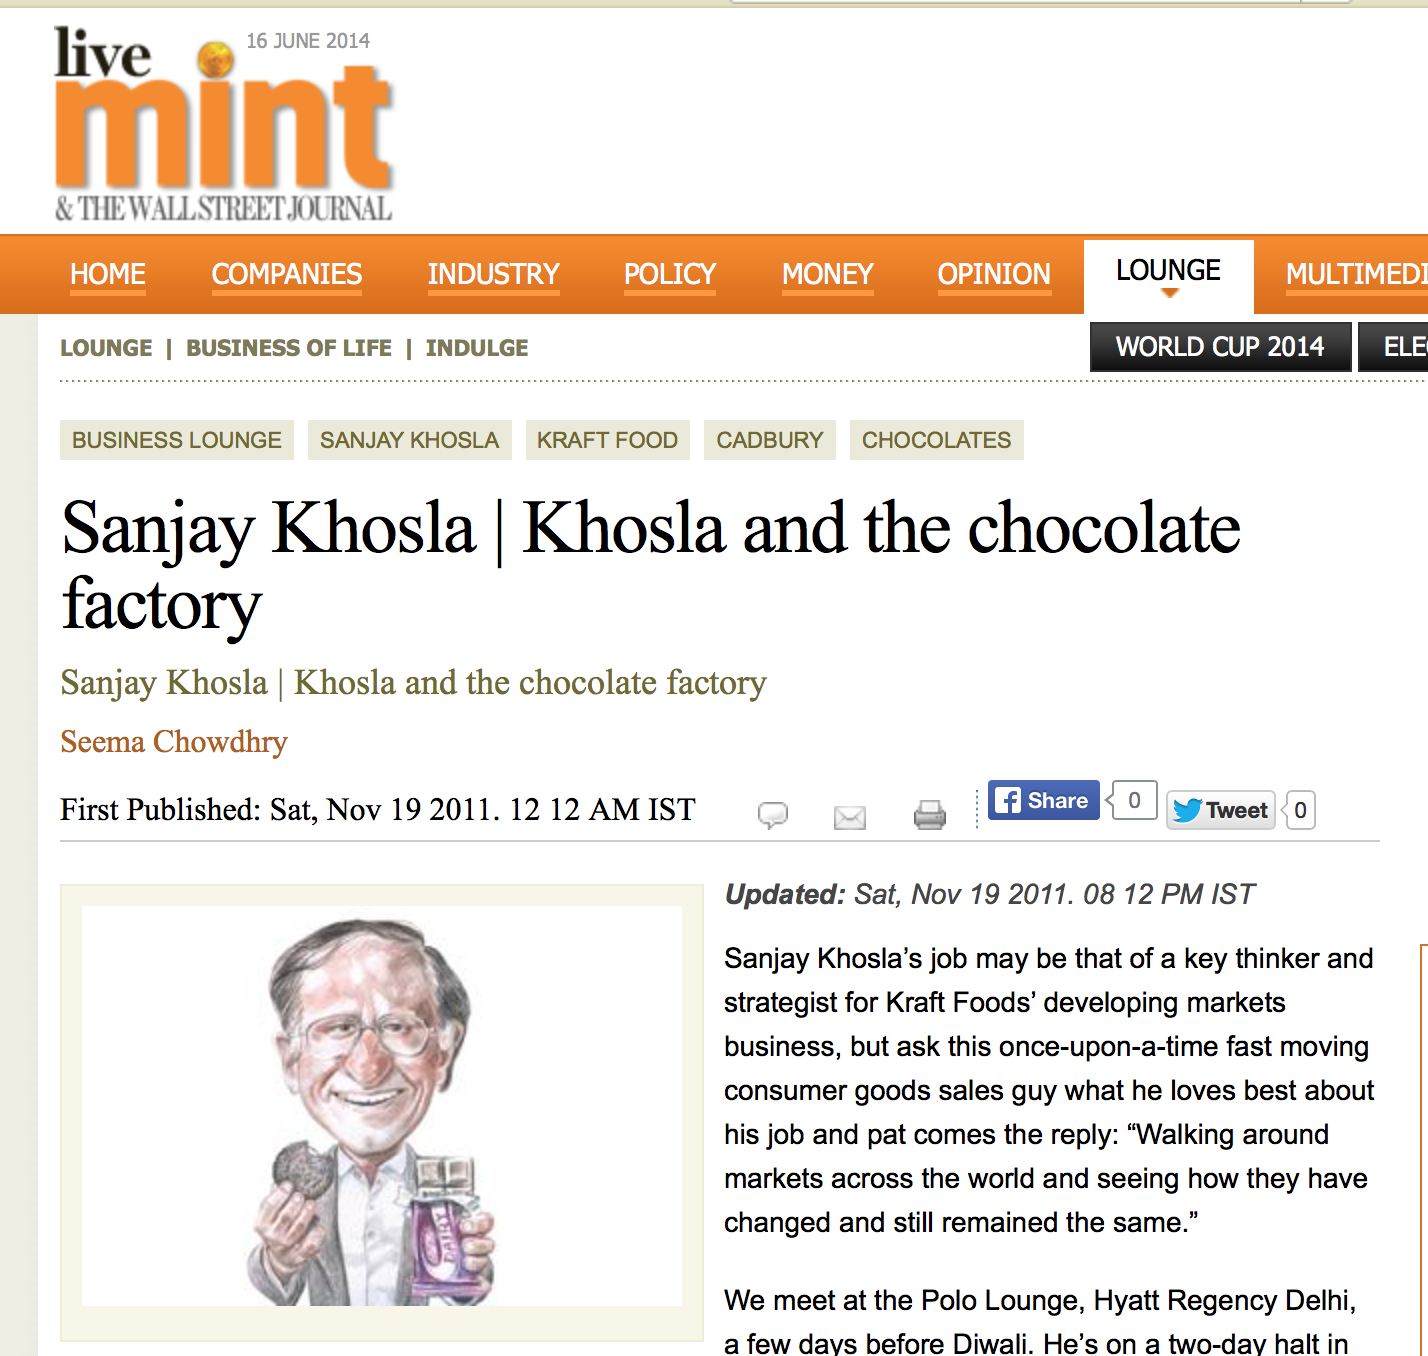 Khosla and the chocolate factory